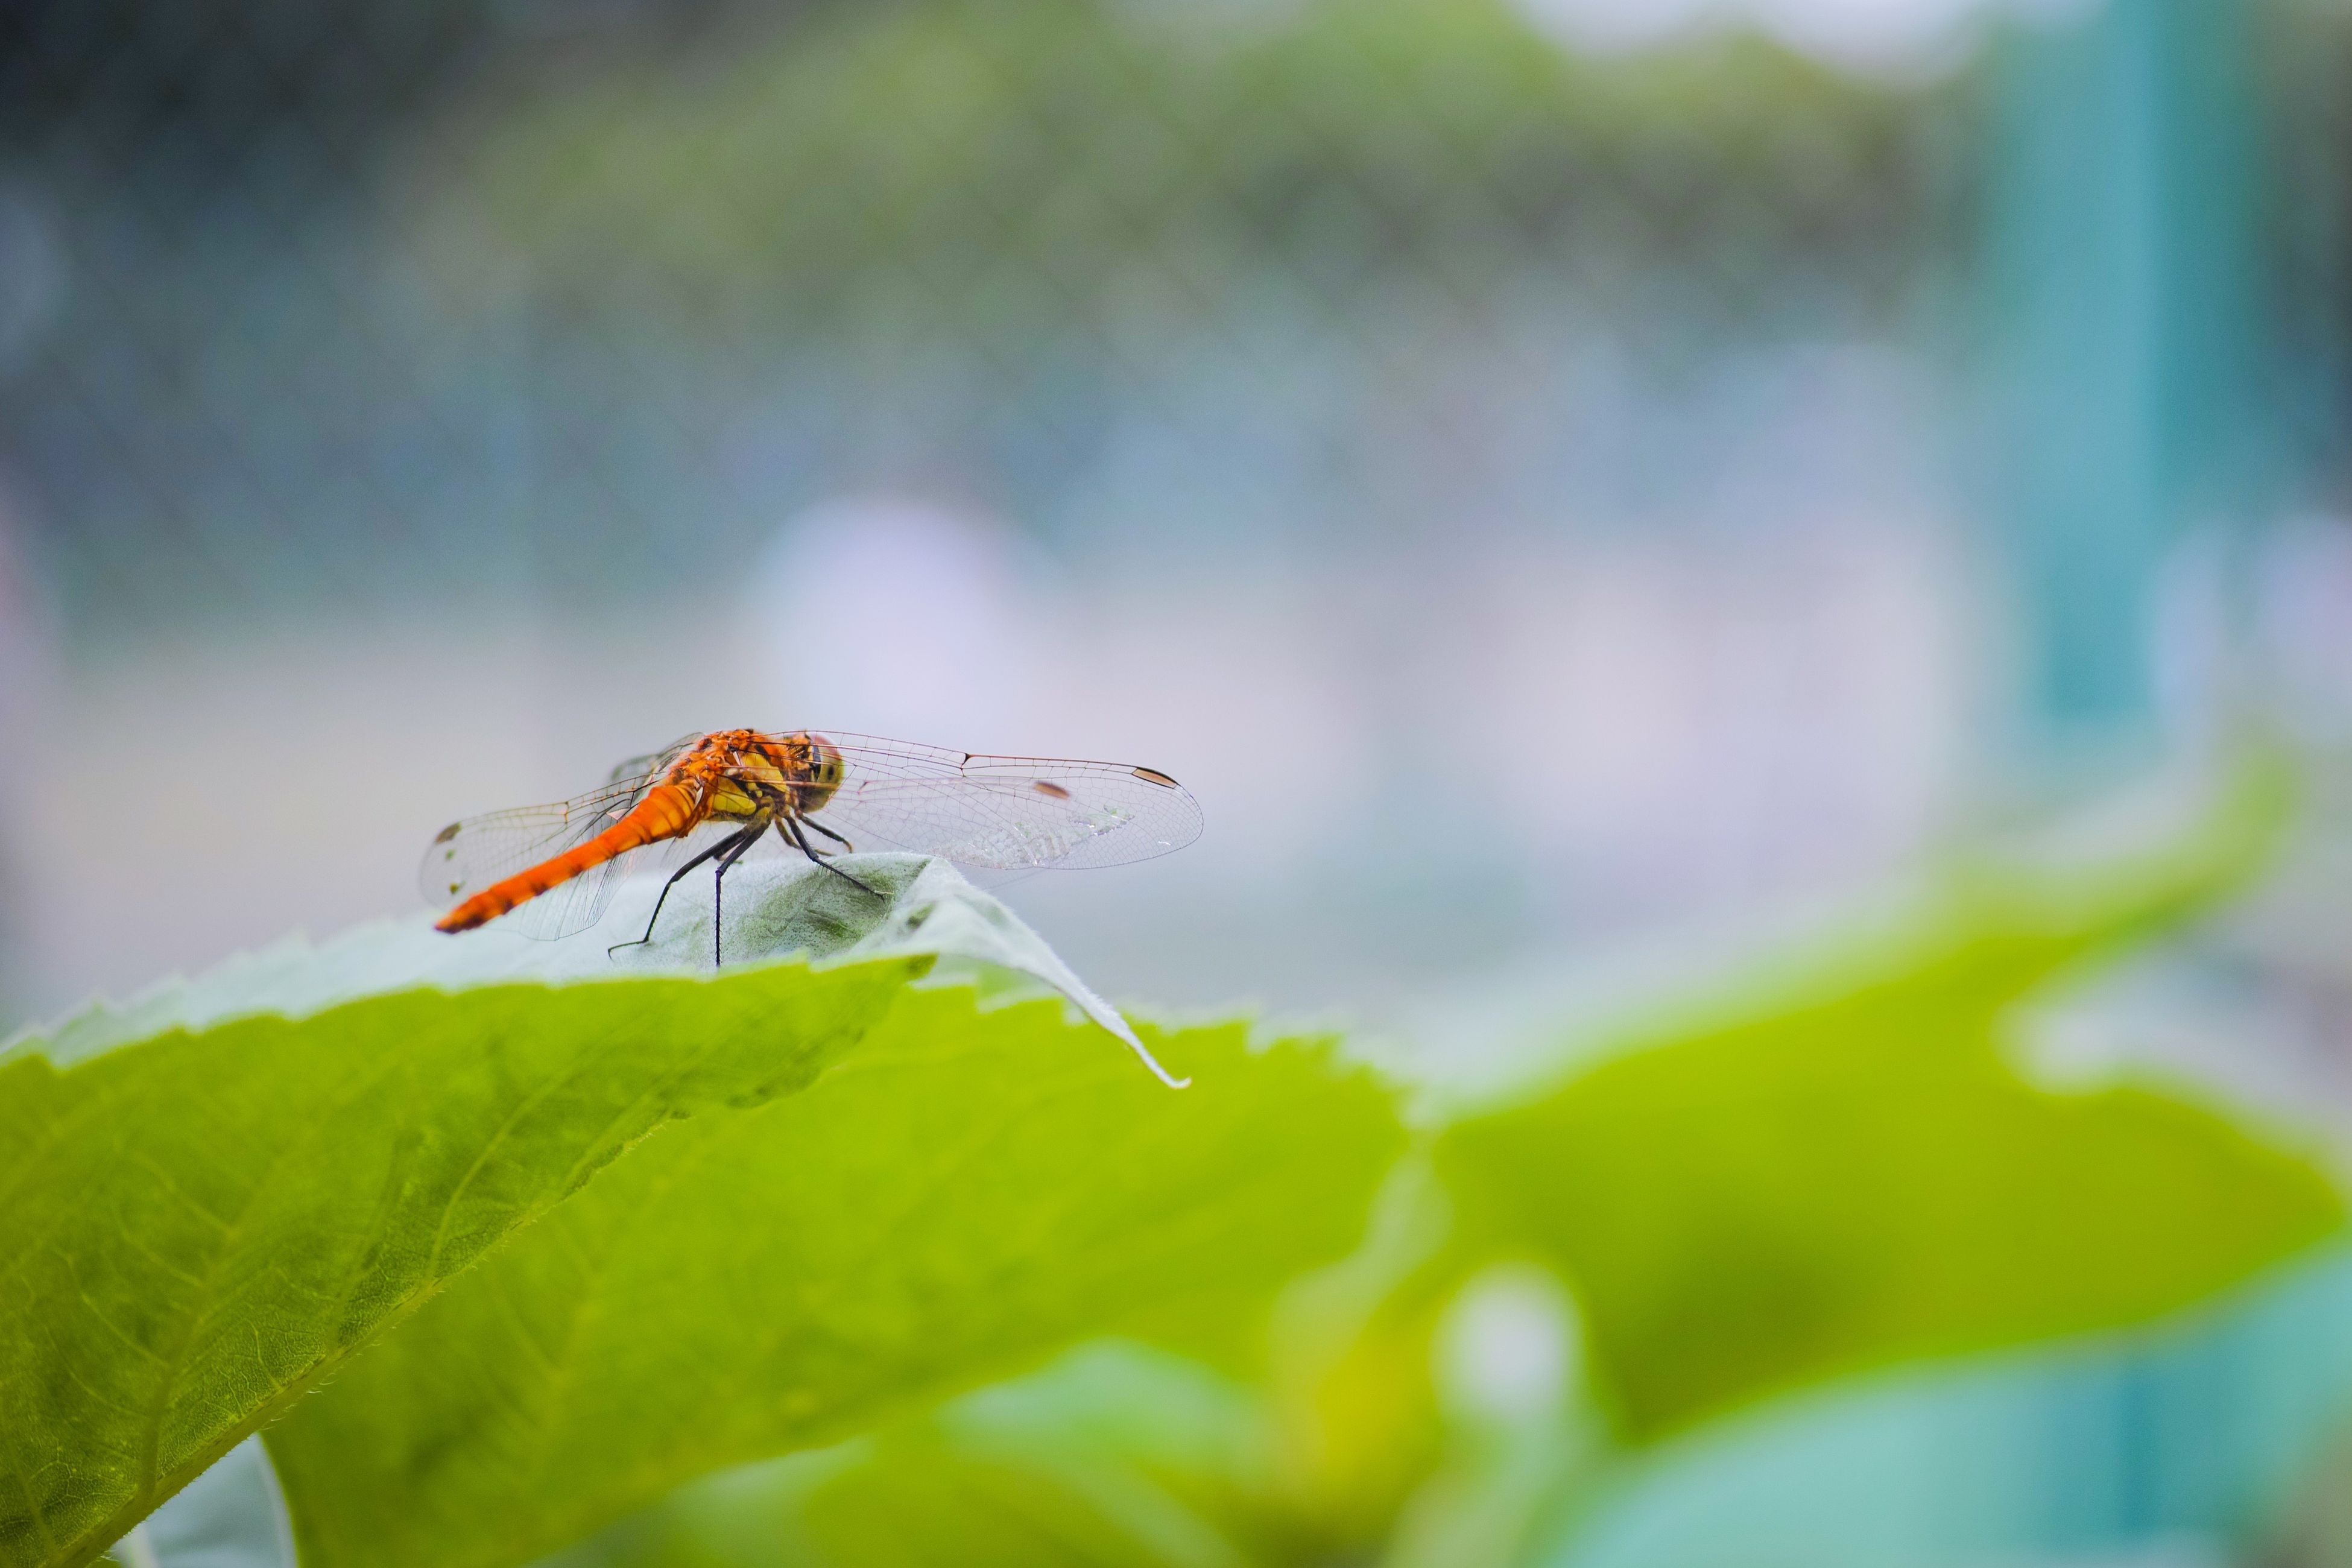 insect, animals in the wild, animal themes, one animal, wildlife, focus on foreground, flower, close-up, nature, plant, fragility, selective focus, animal wing, day, outdoors, beauty in nature, spider, growth, dragonfly, no people